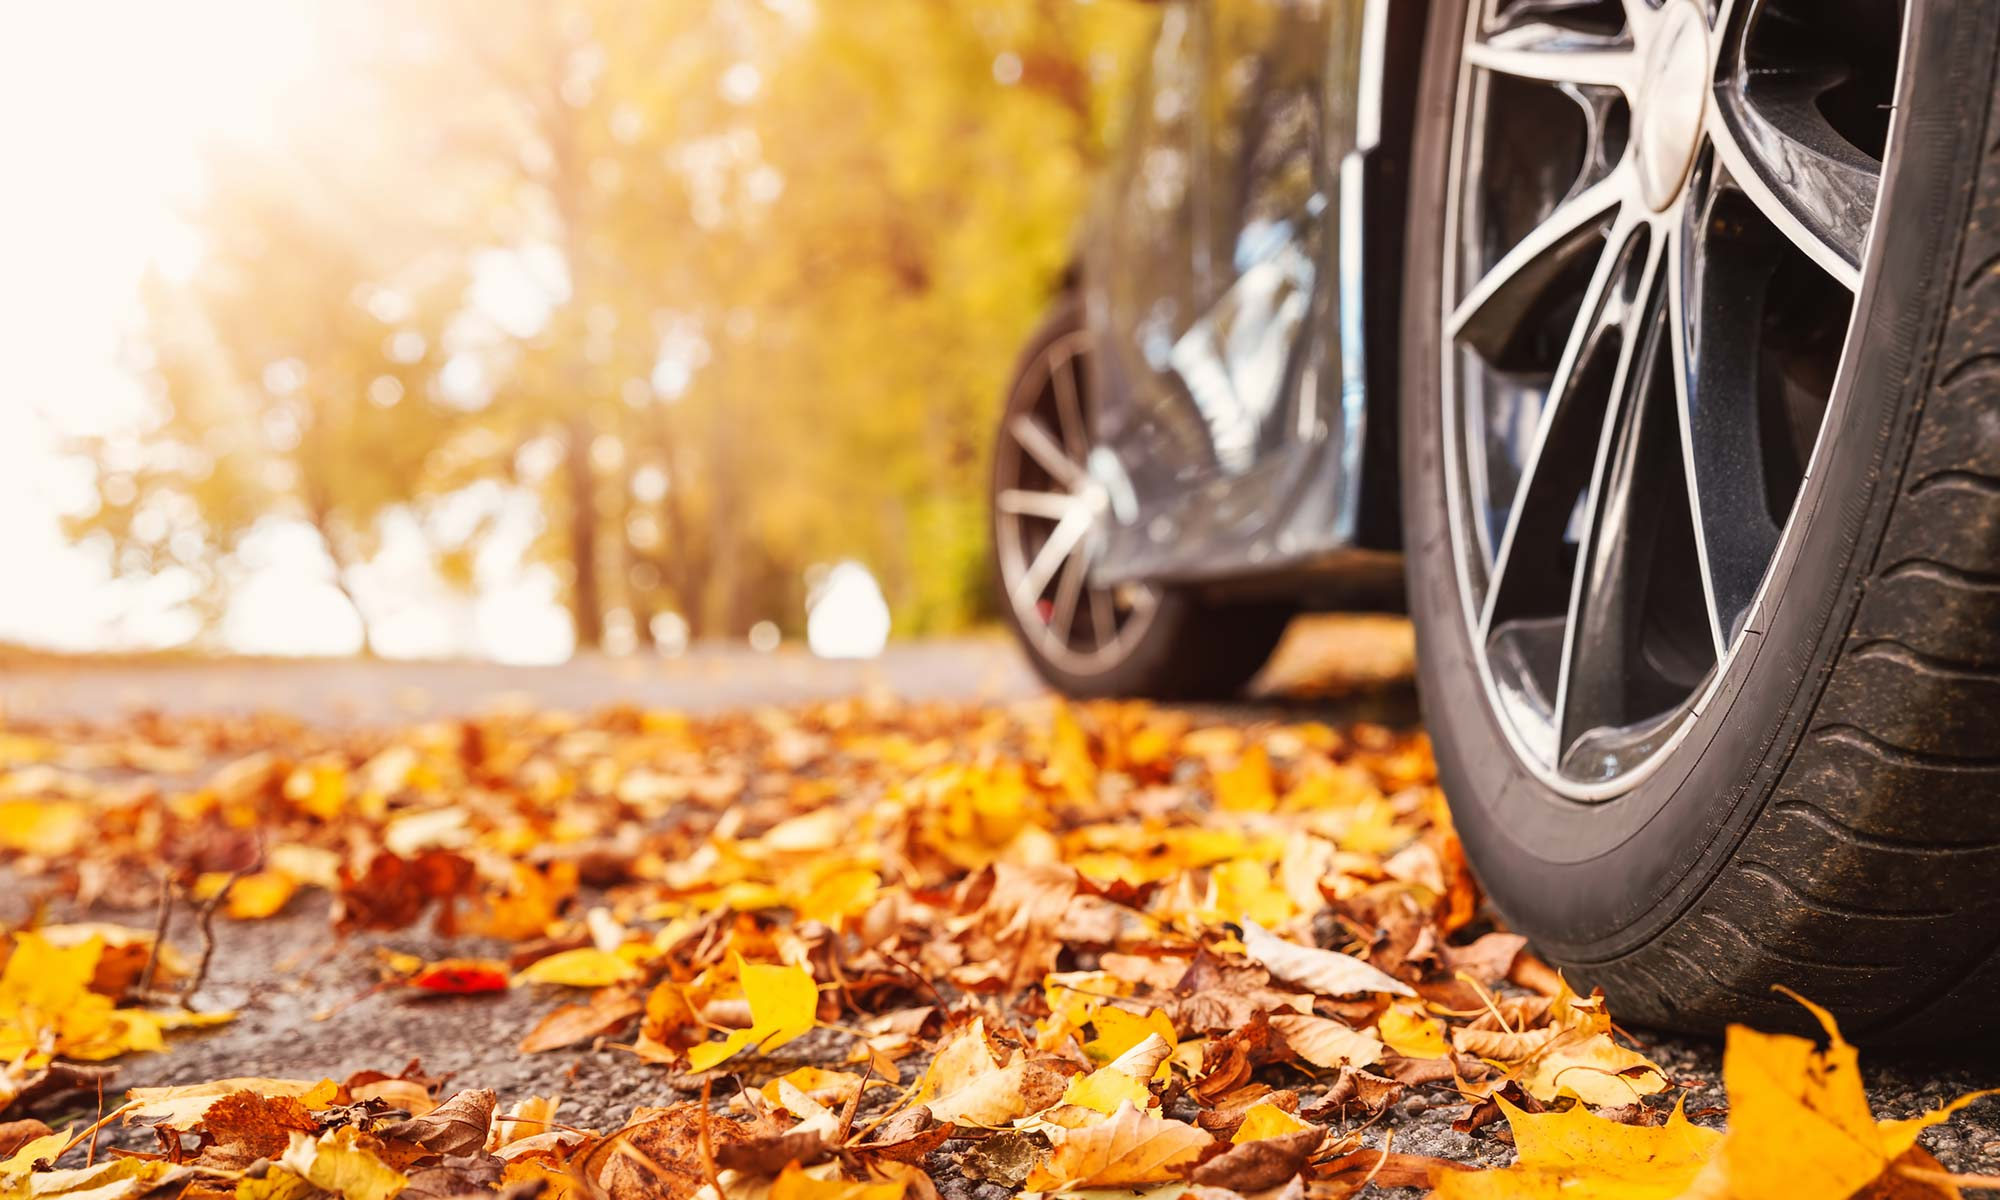 A close up image of a car's tires on a road covered with leaves.